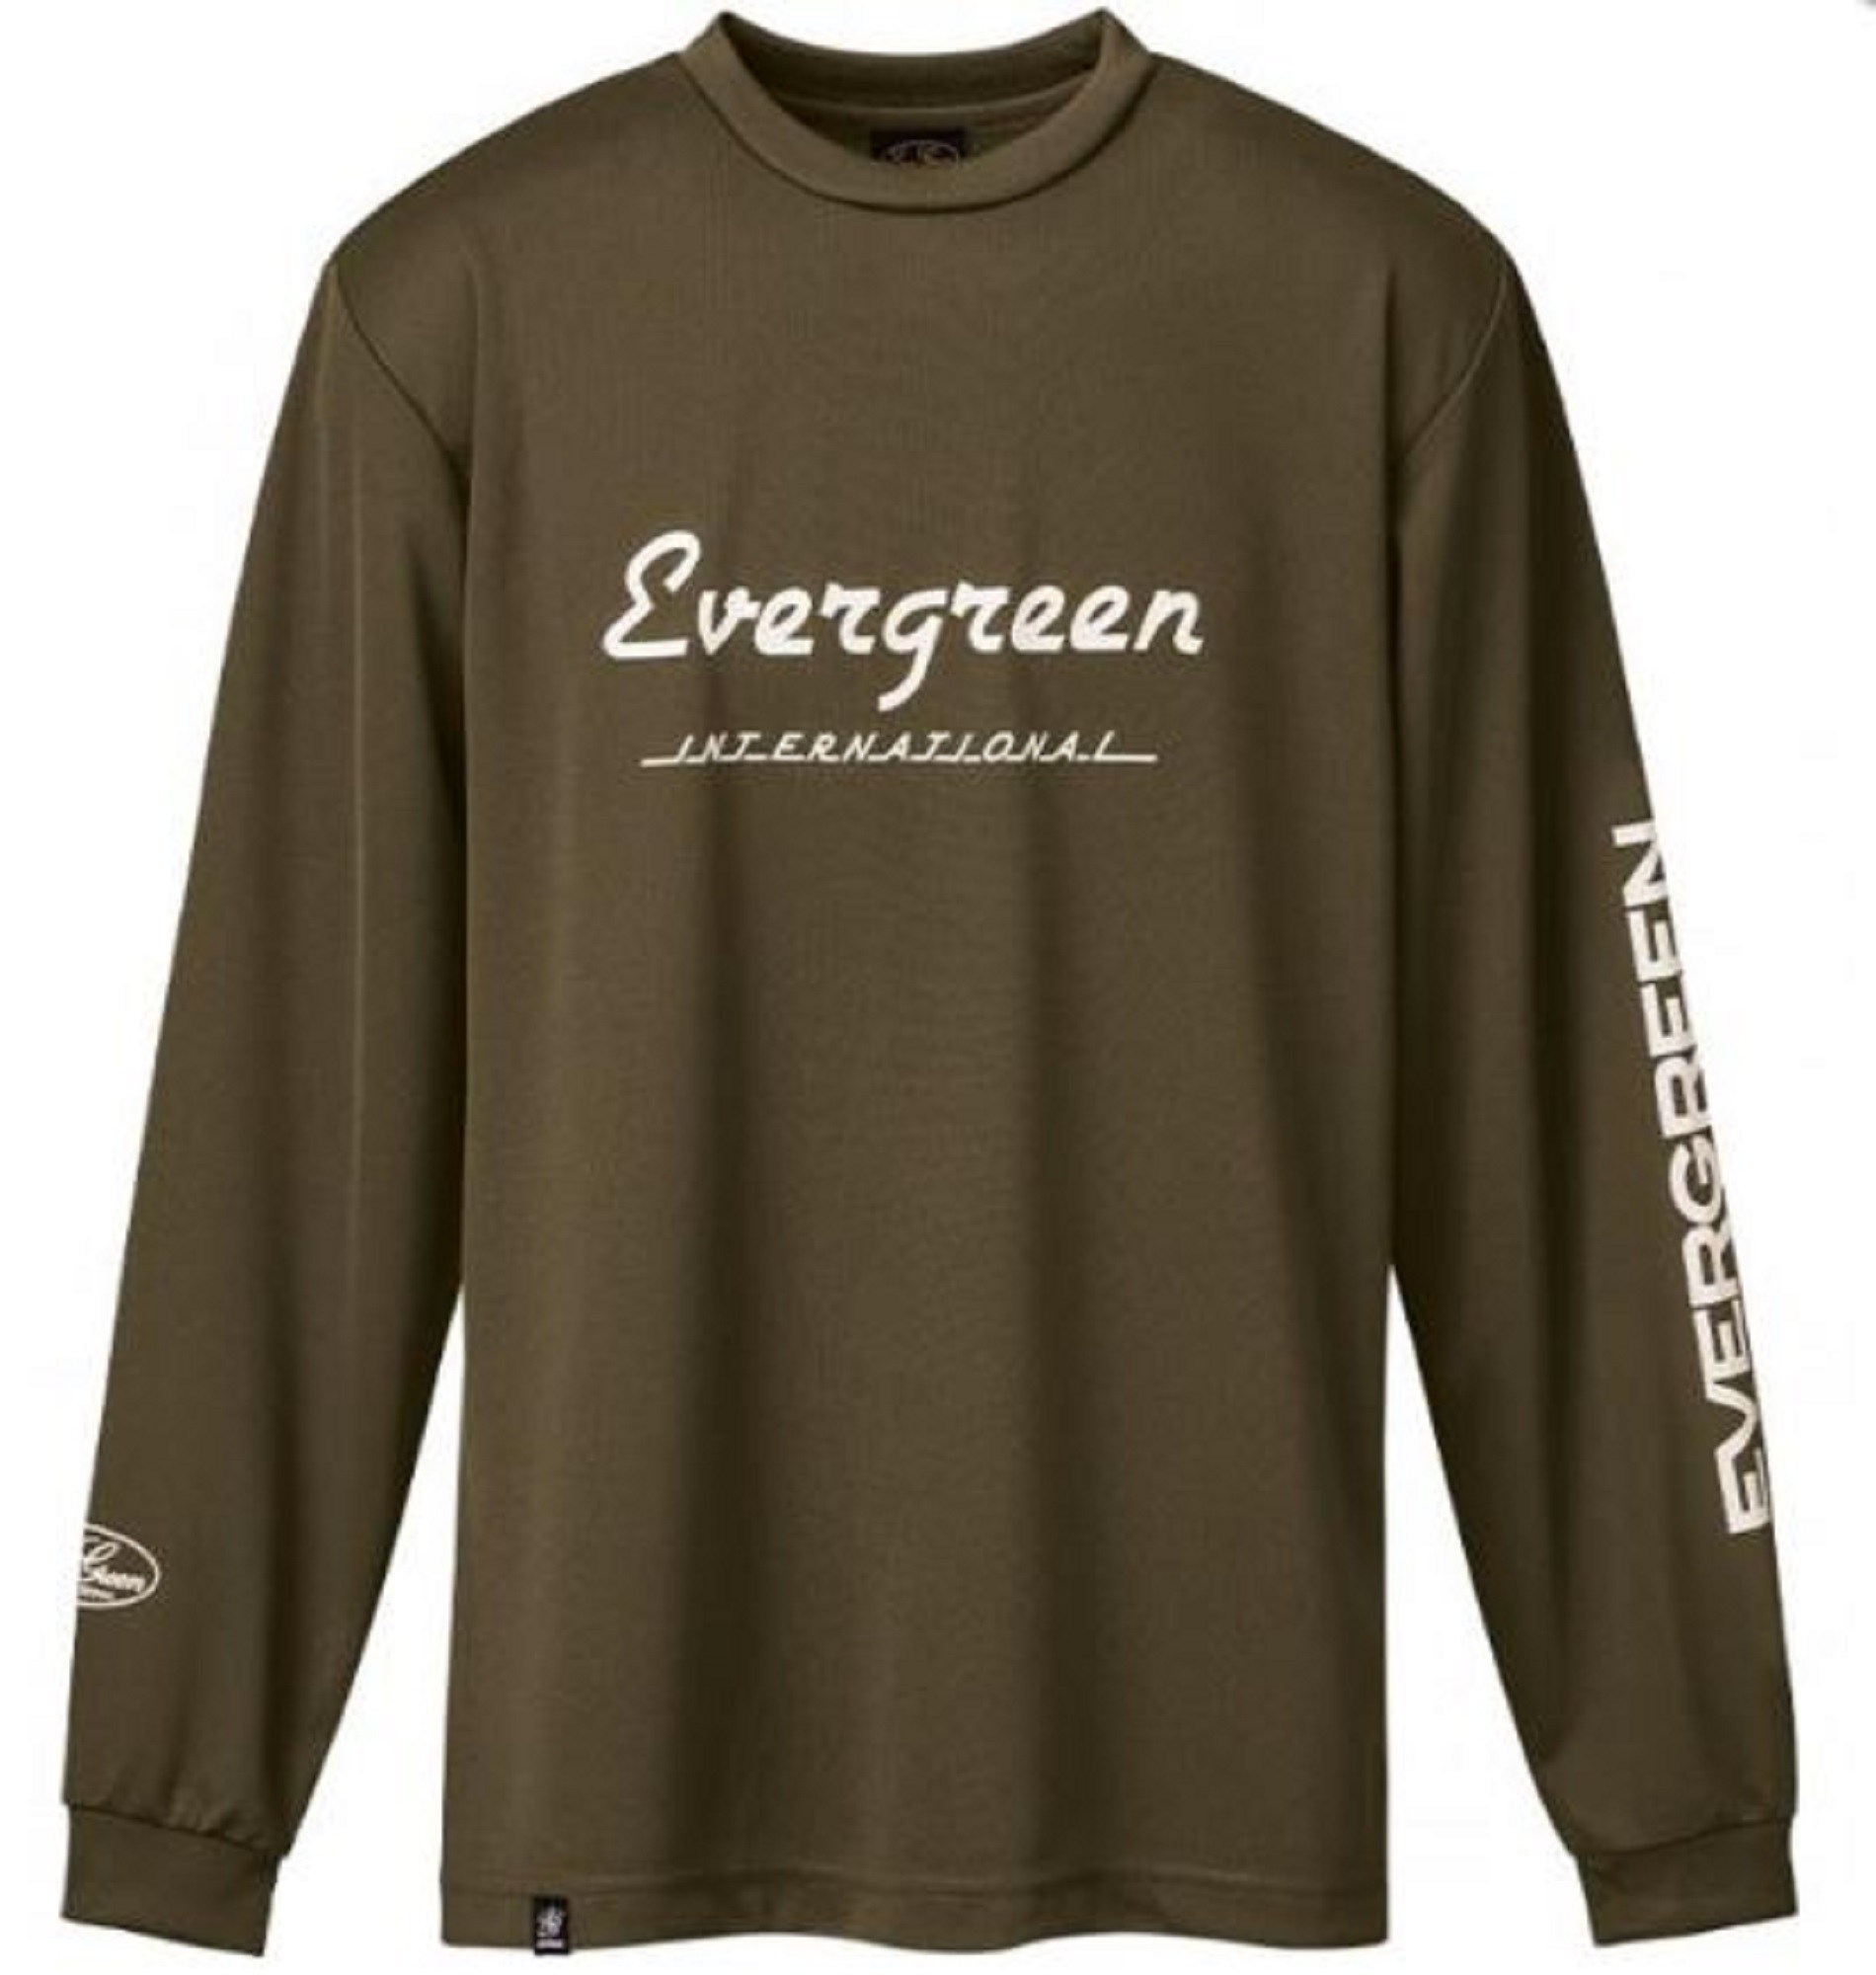 Evergreen T-Shirt Dry Fit Long Sleeve F Type Size L Army (0068)